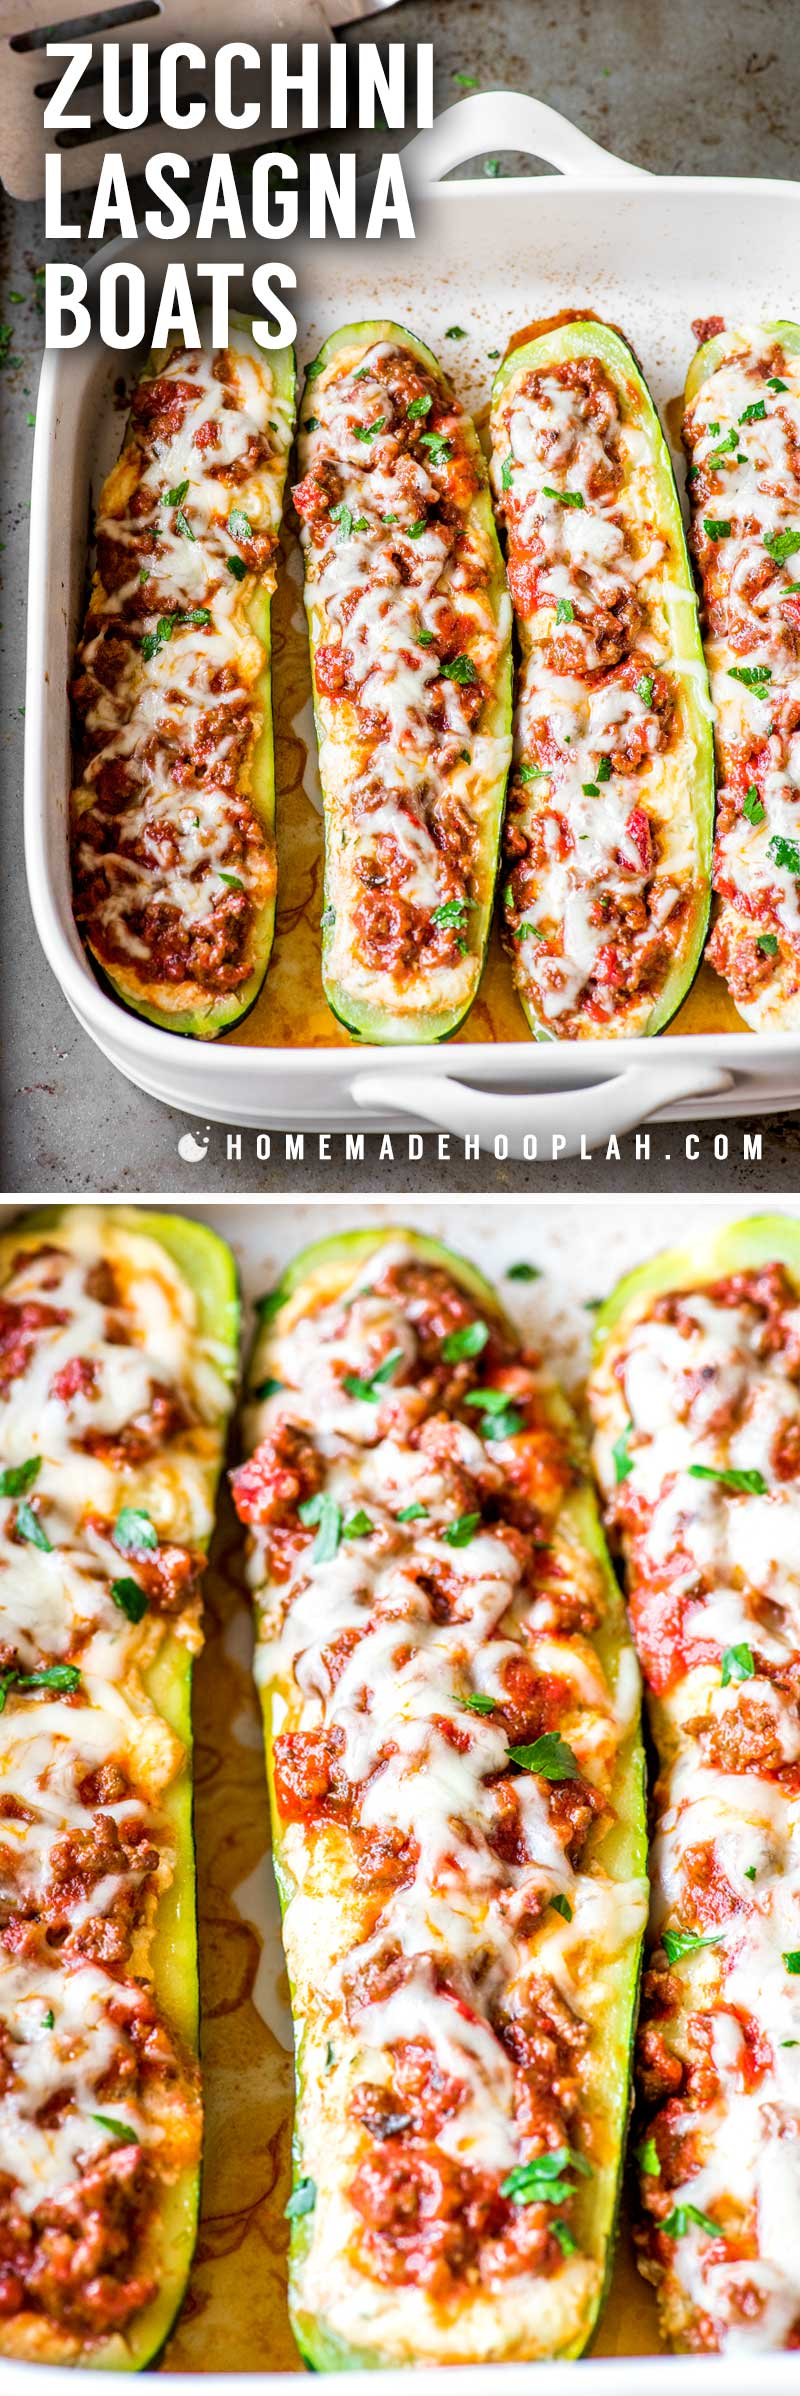 Zucchini Lasagna Boats! Tender baked zucchini filled with a mix of flavorful cheeses and topped with a meaty Ragu sauce. Plus, it's easy to adjust the serving amount of this recipe to fit any time, date, or occasion! #AD #SimmeredinTradition | HomemadeHooplah.com